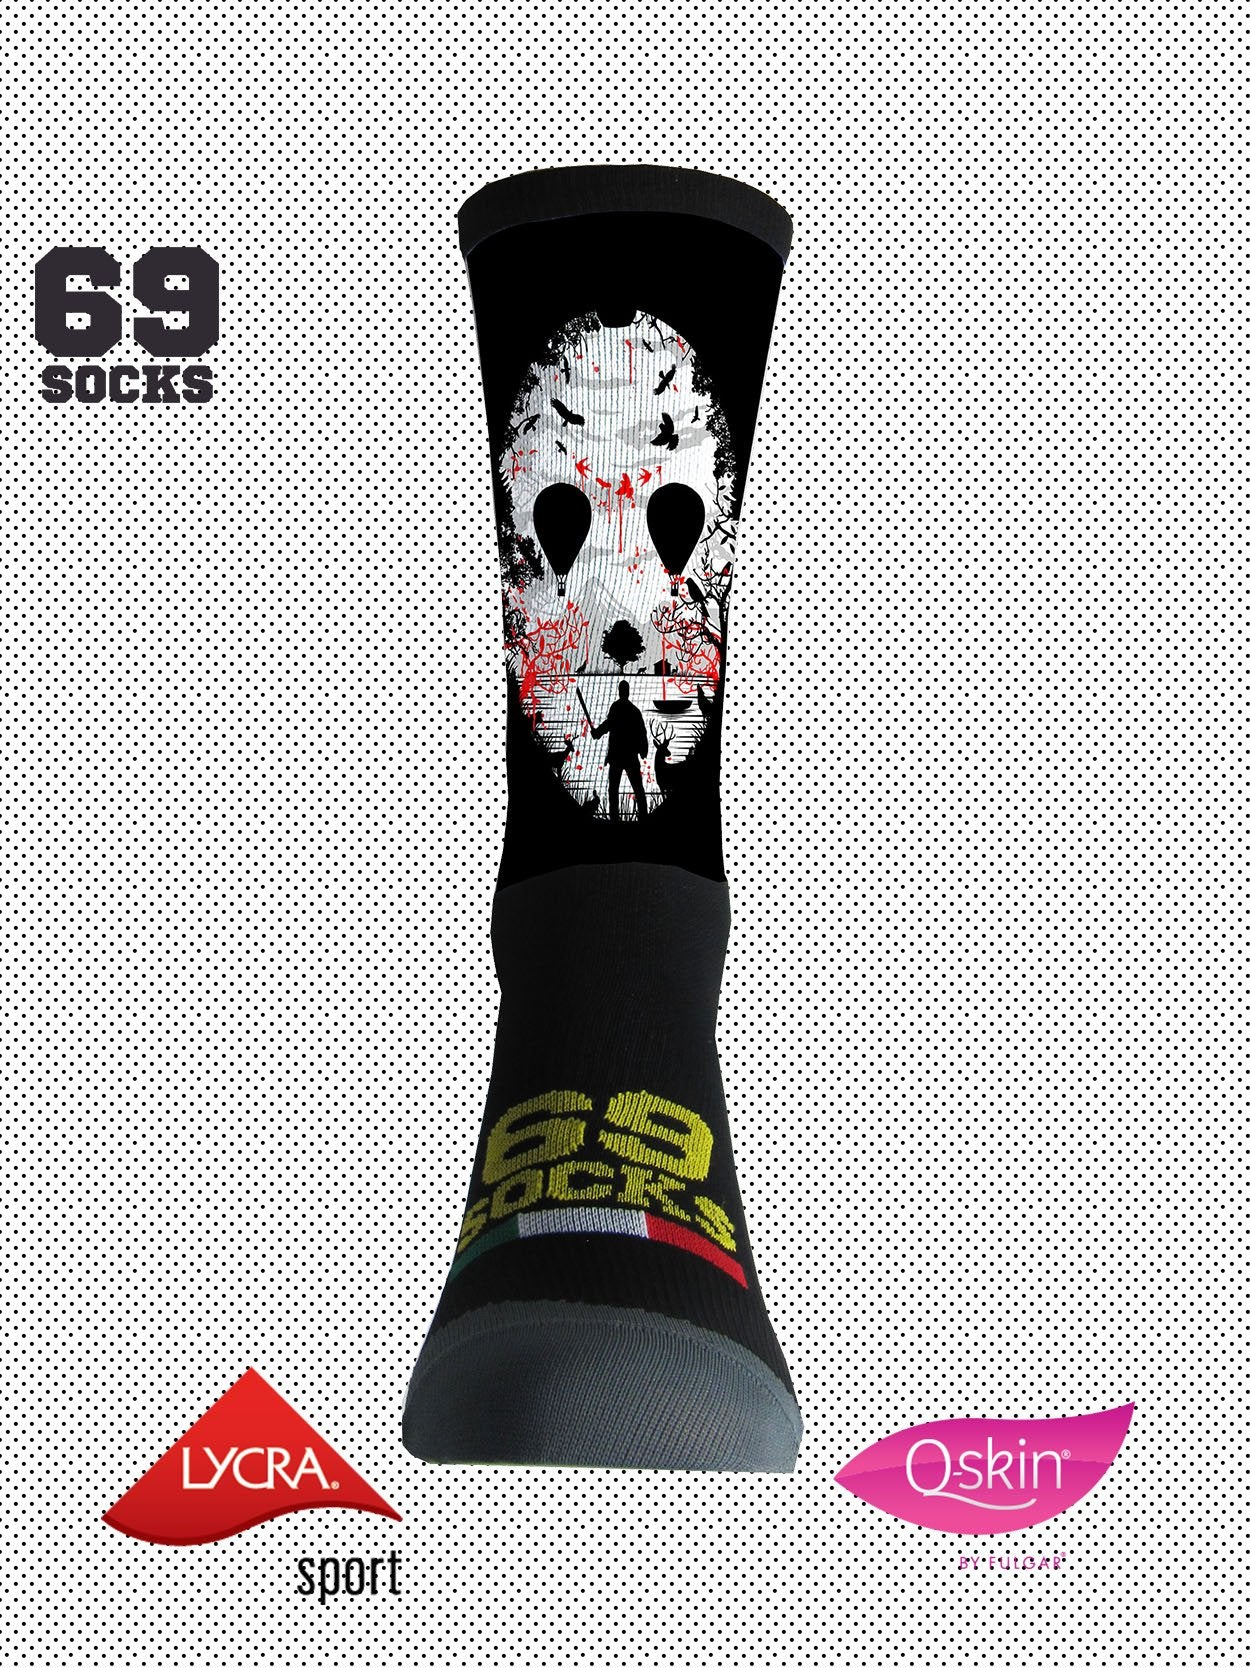 #69socks Q-skin Short Jason